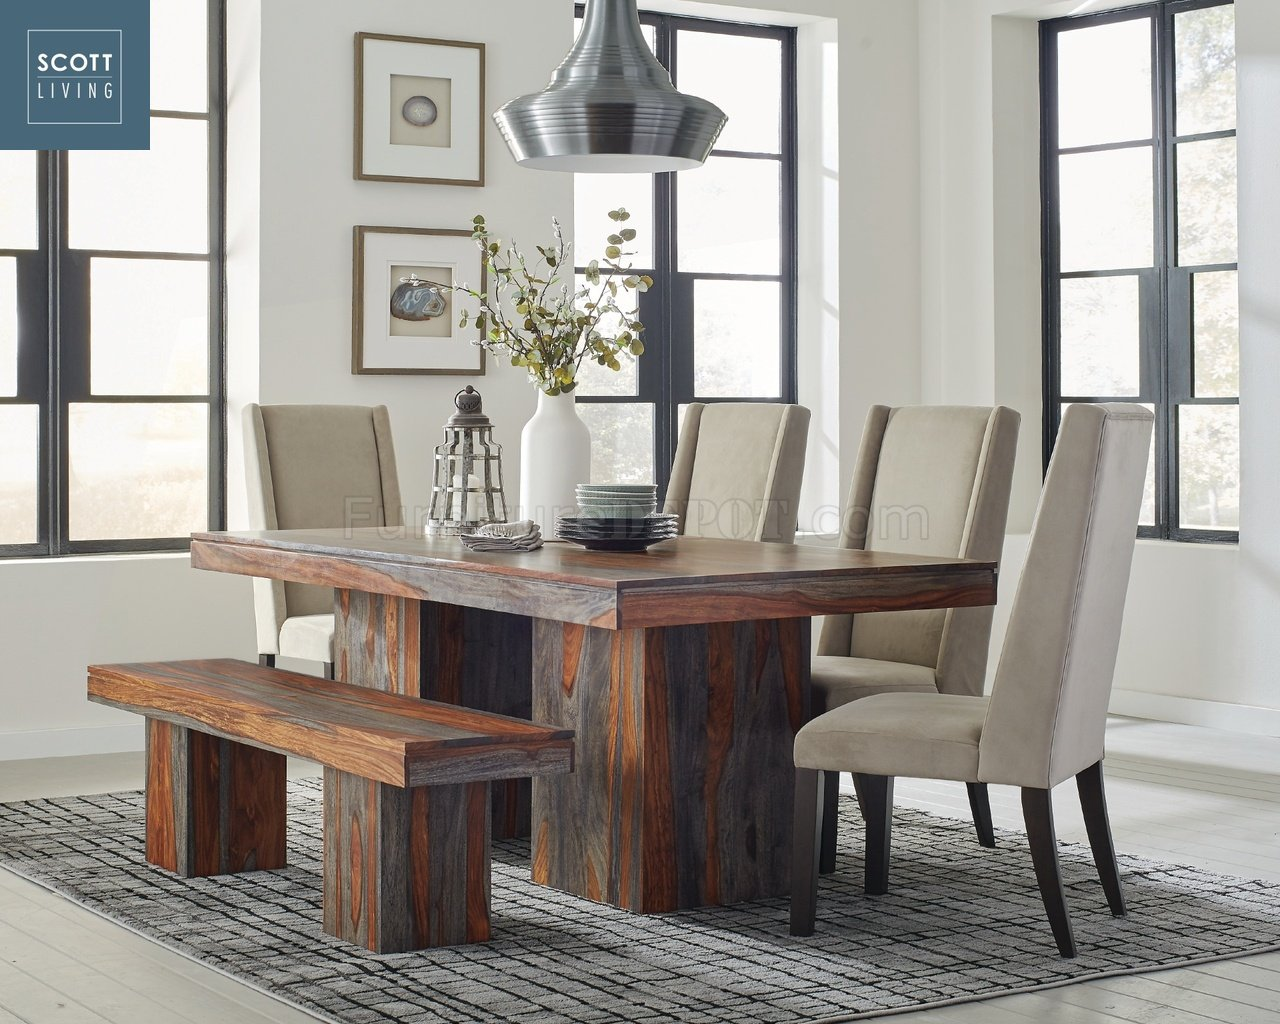 Binghamton 107481 Scott Living Coaster Dining Table